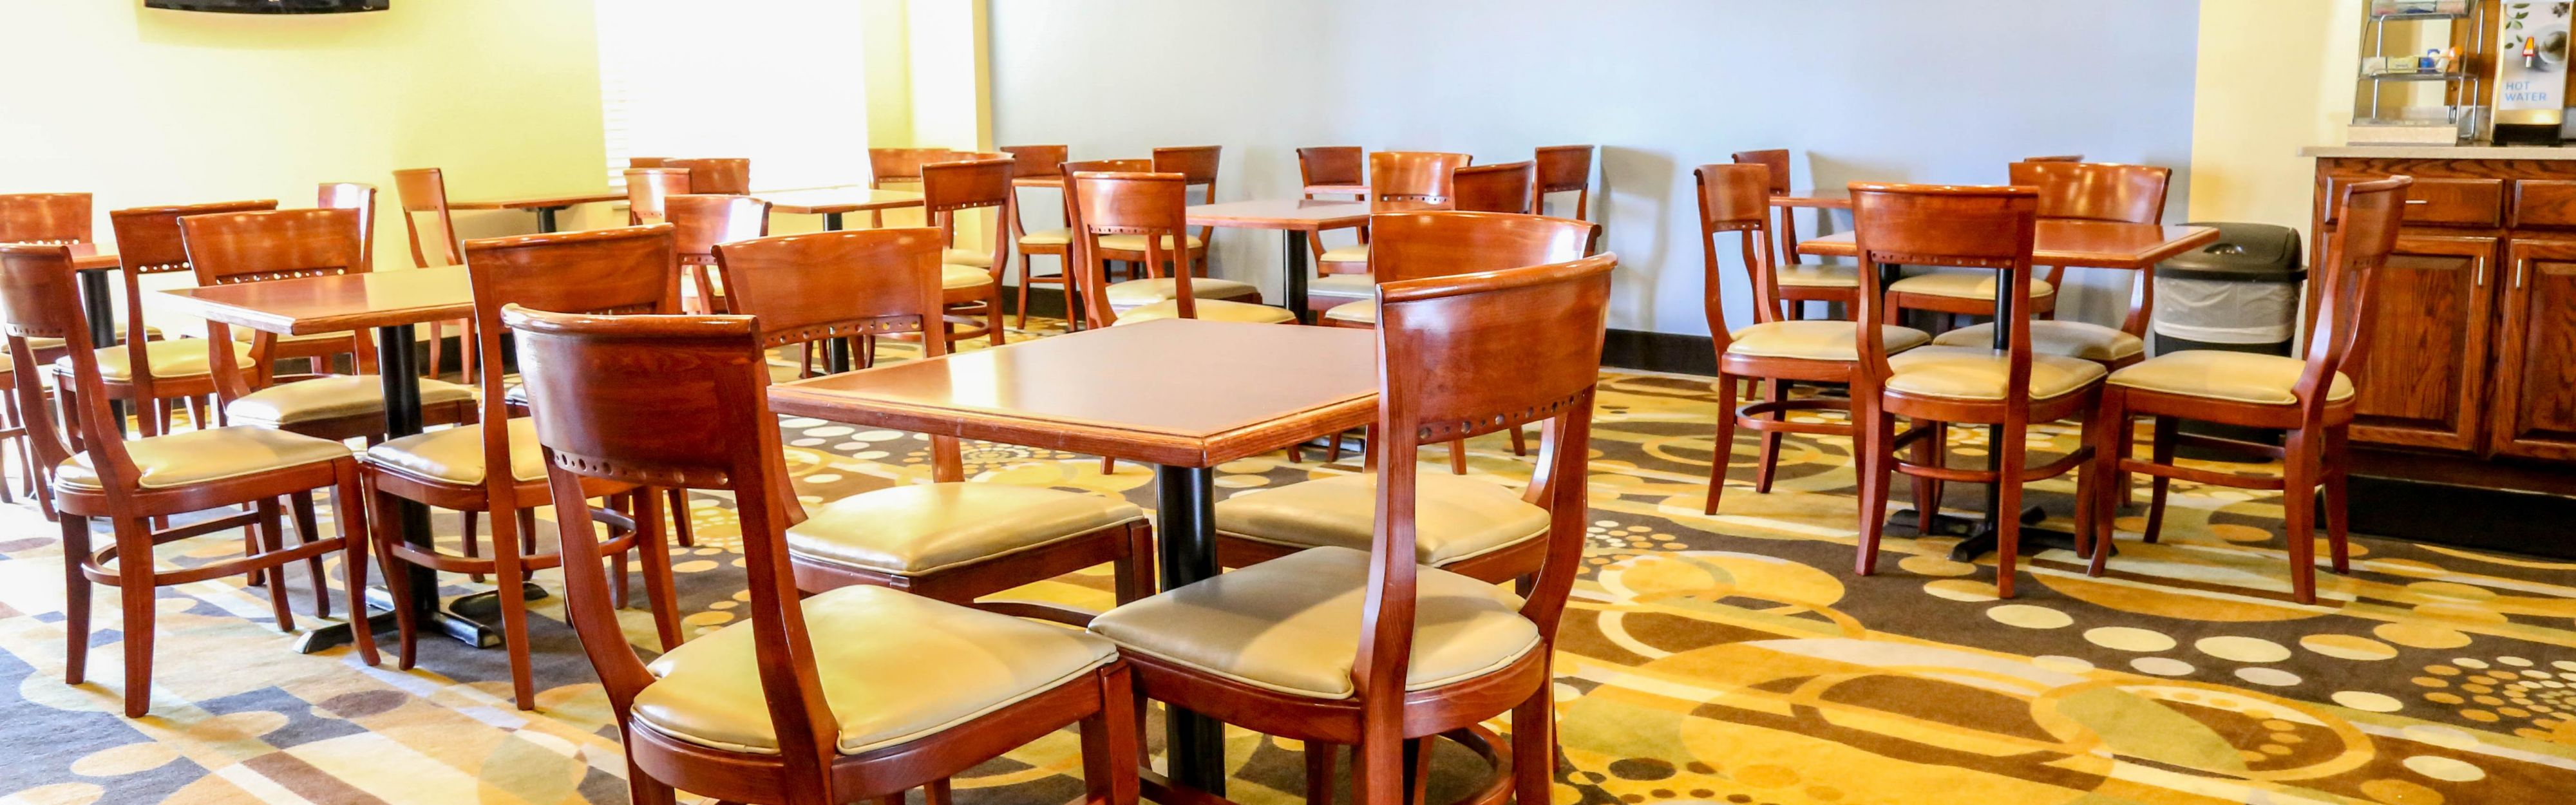 Holiday Inn Express & Suites Weatherford image 3